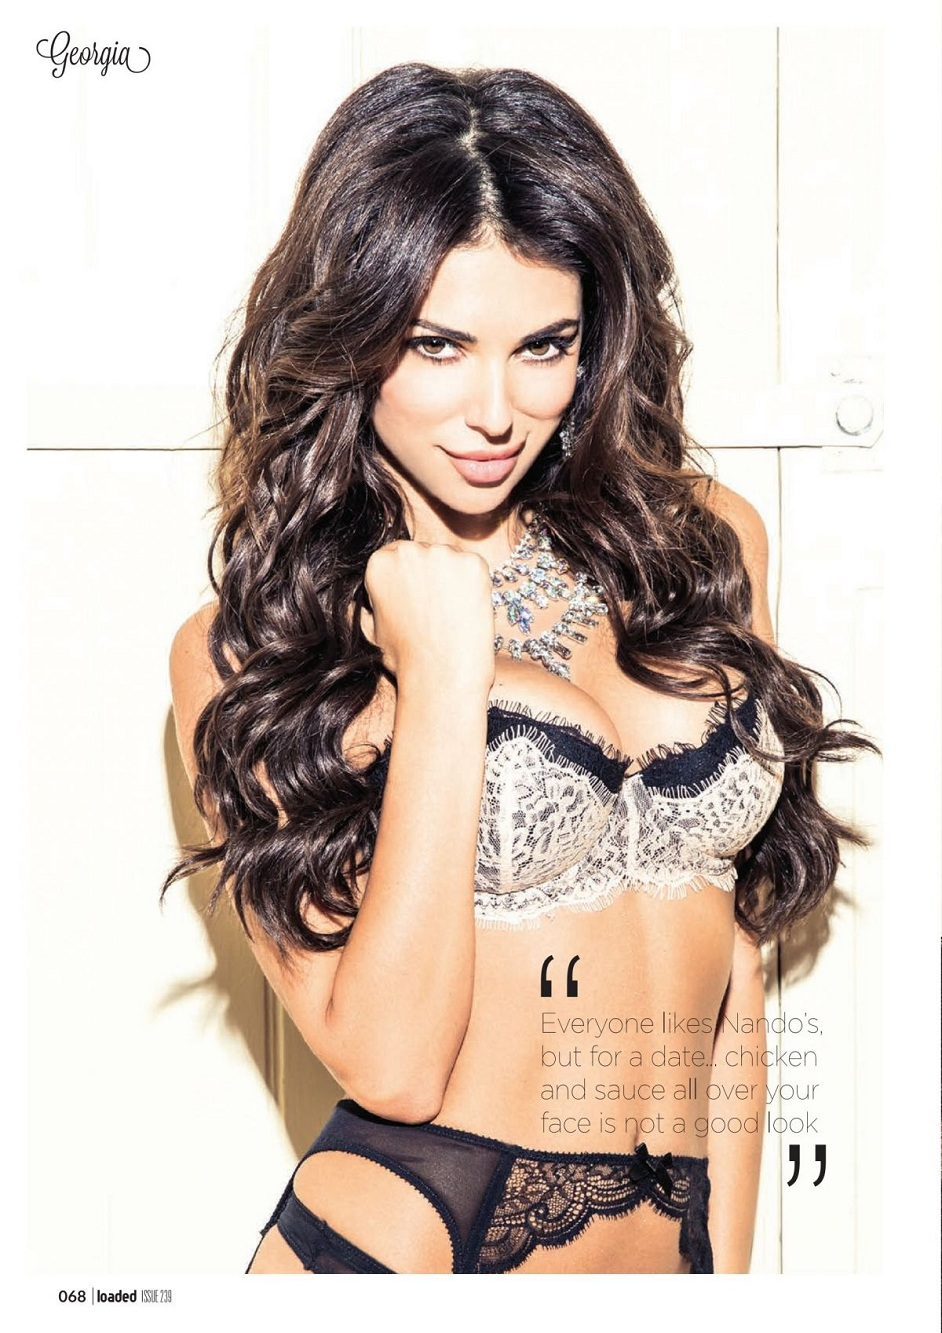 georgia-salpa-in-loaded-magazine-march-2014-issue_9.jpg - 337.24 KB